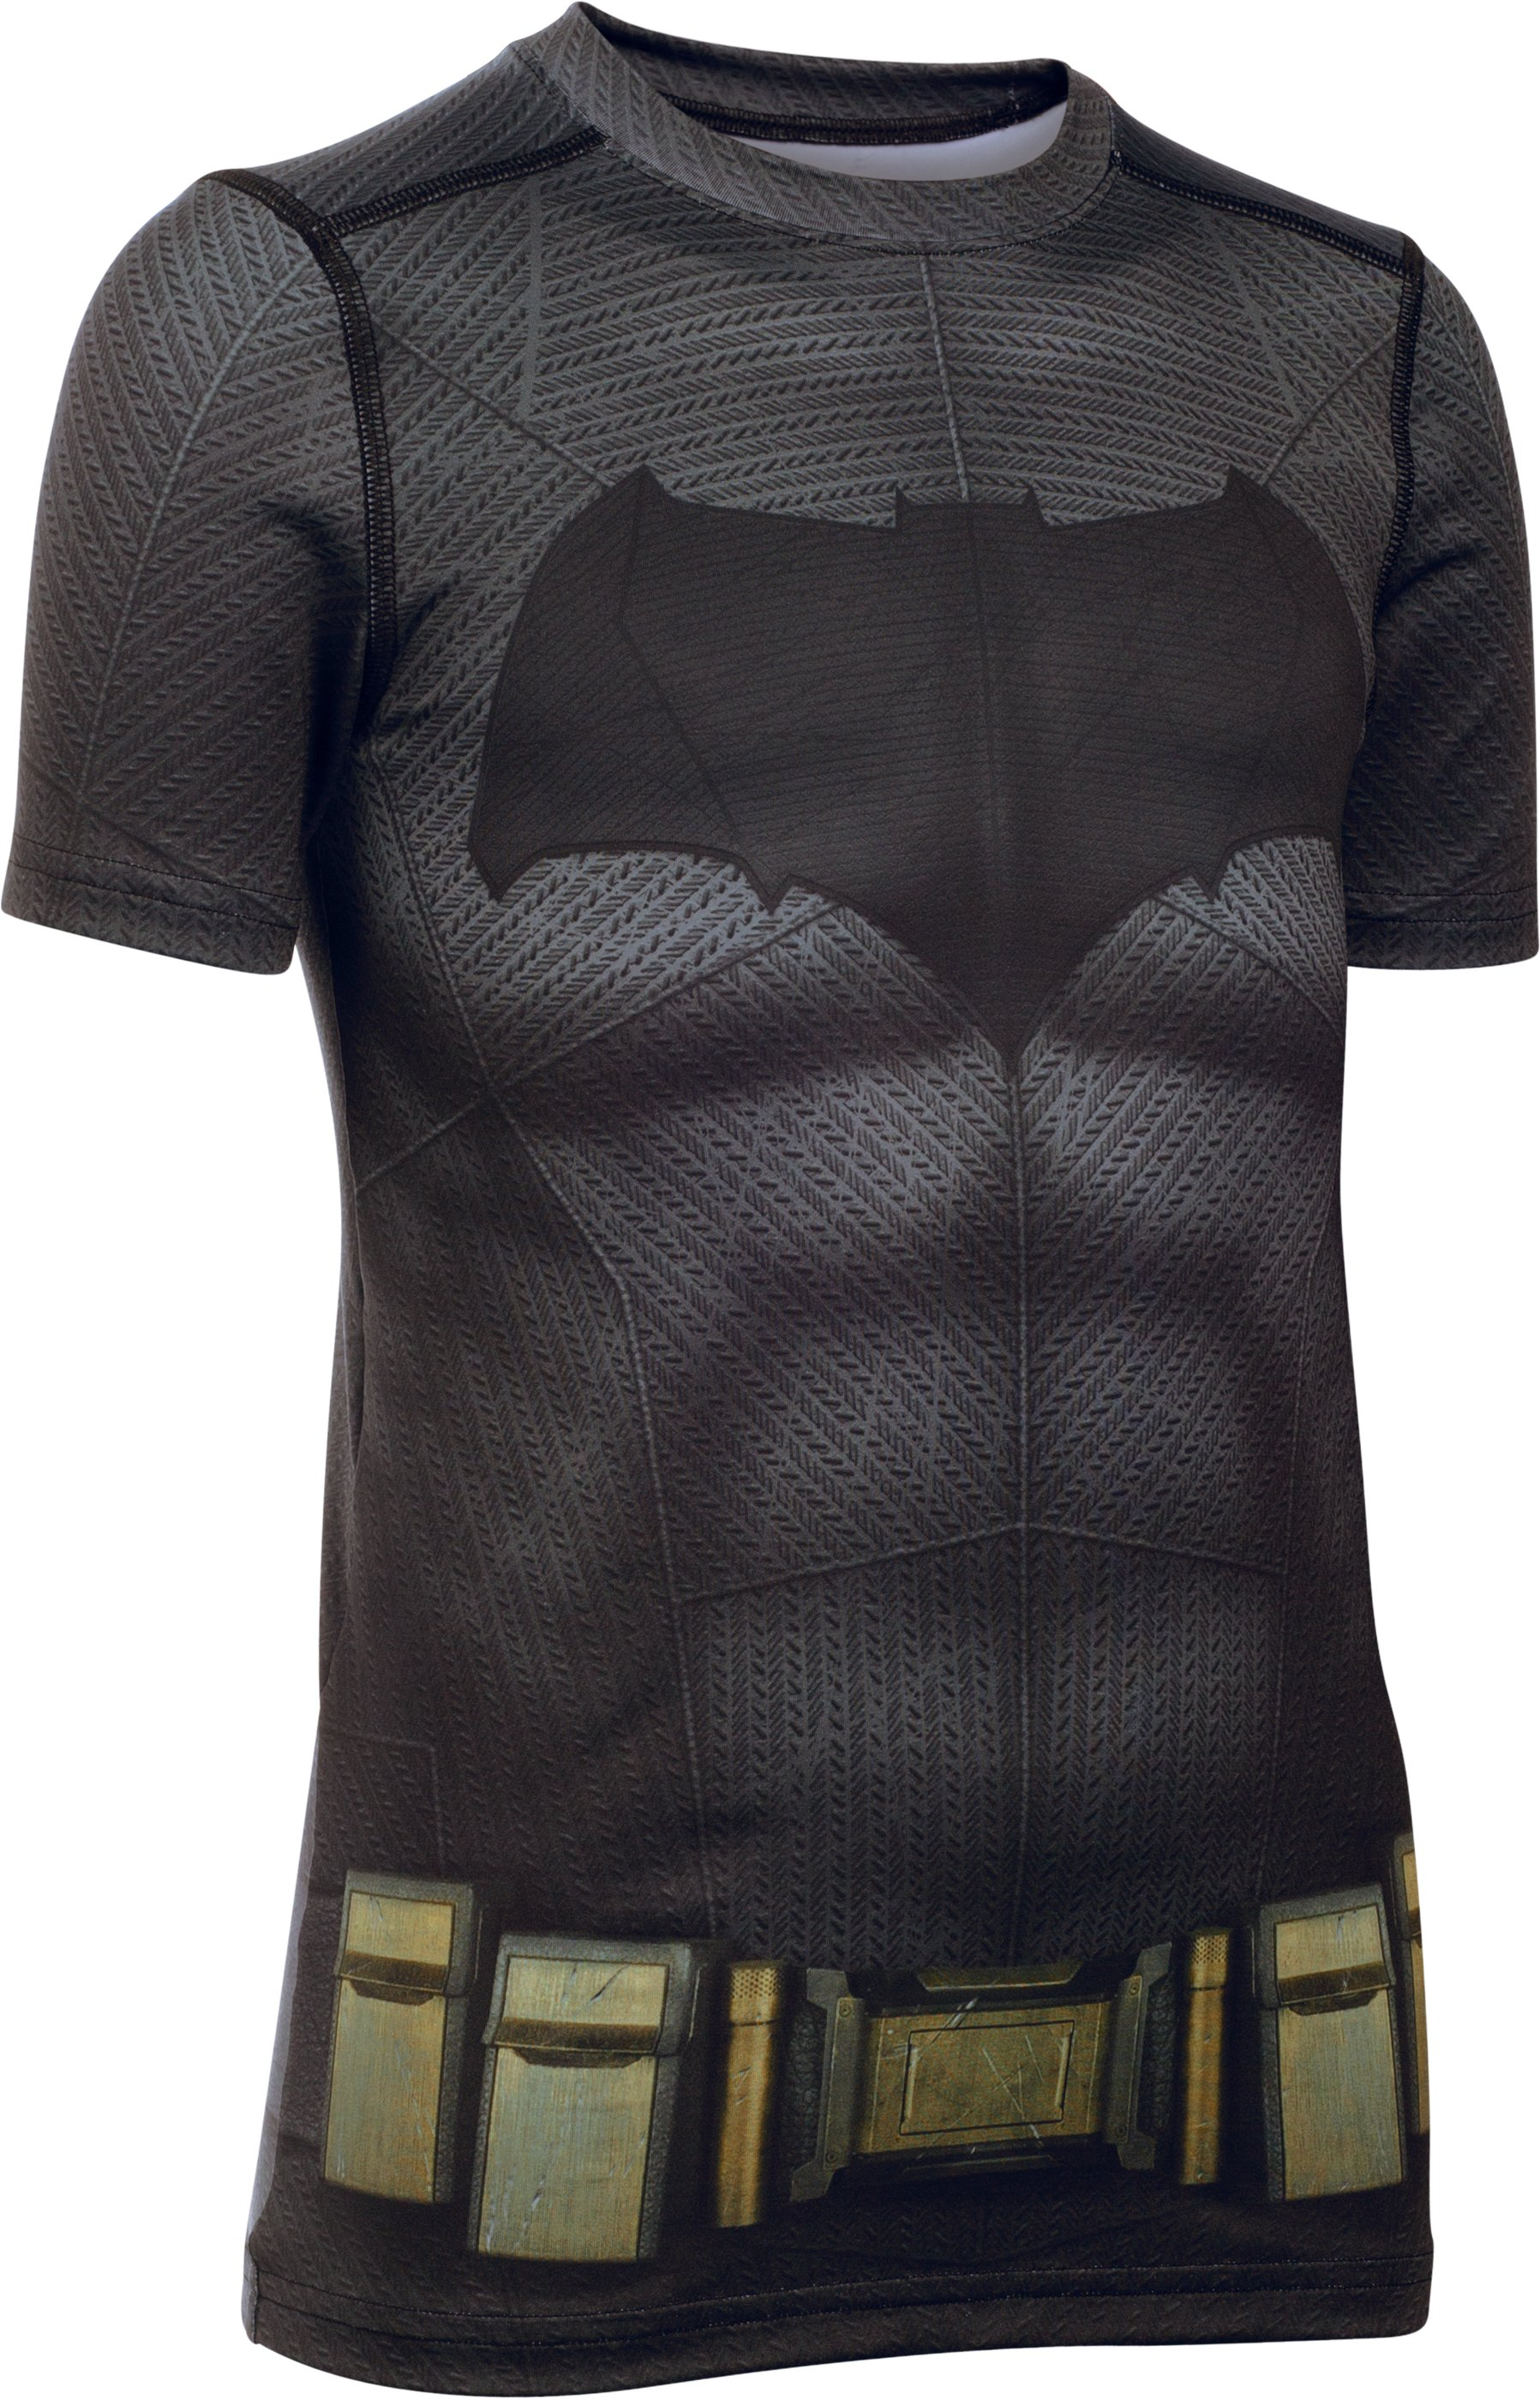 Boys' Under Armour® Alter Ego Batman Fitted Shirt, Graphite, undefined